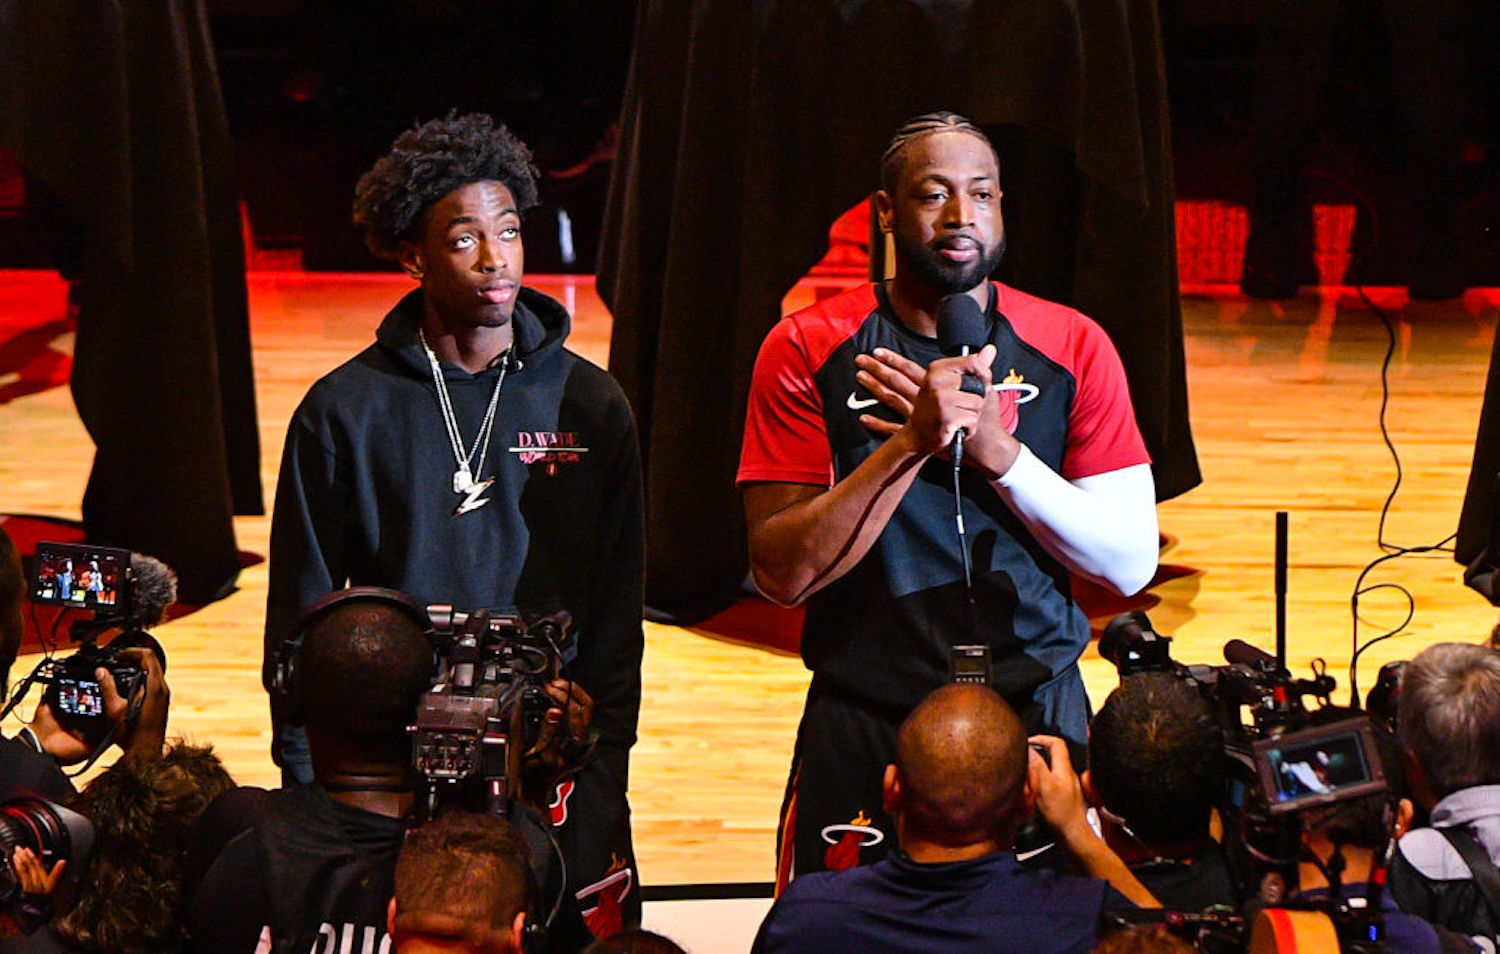 Dwyane Wade's teenage son Zaire is growing into a star basketball prospect, but he still gets humbled by his old man on the court.